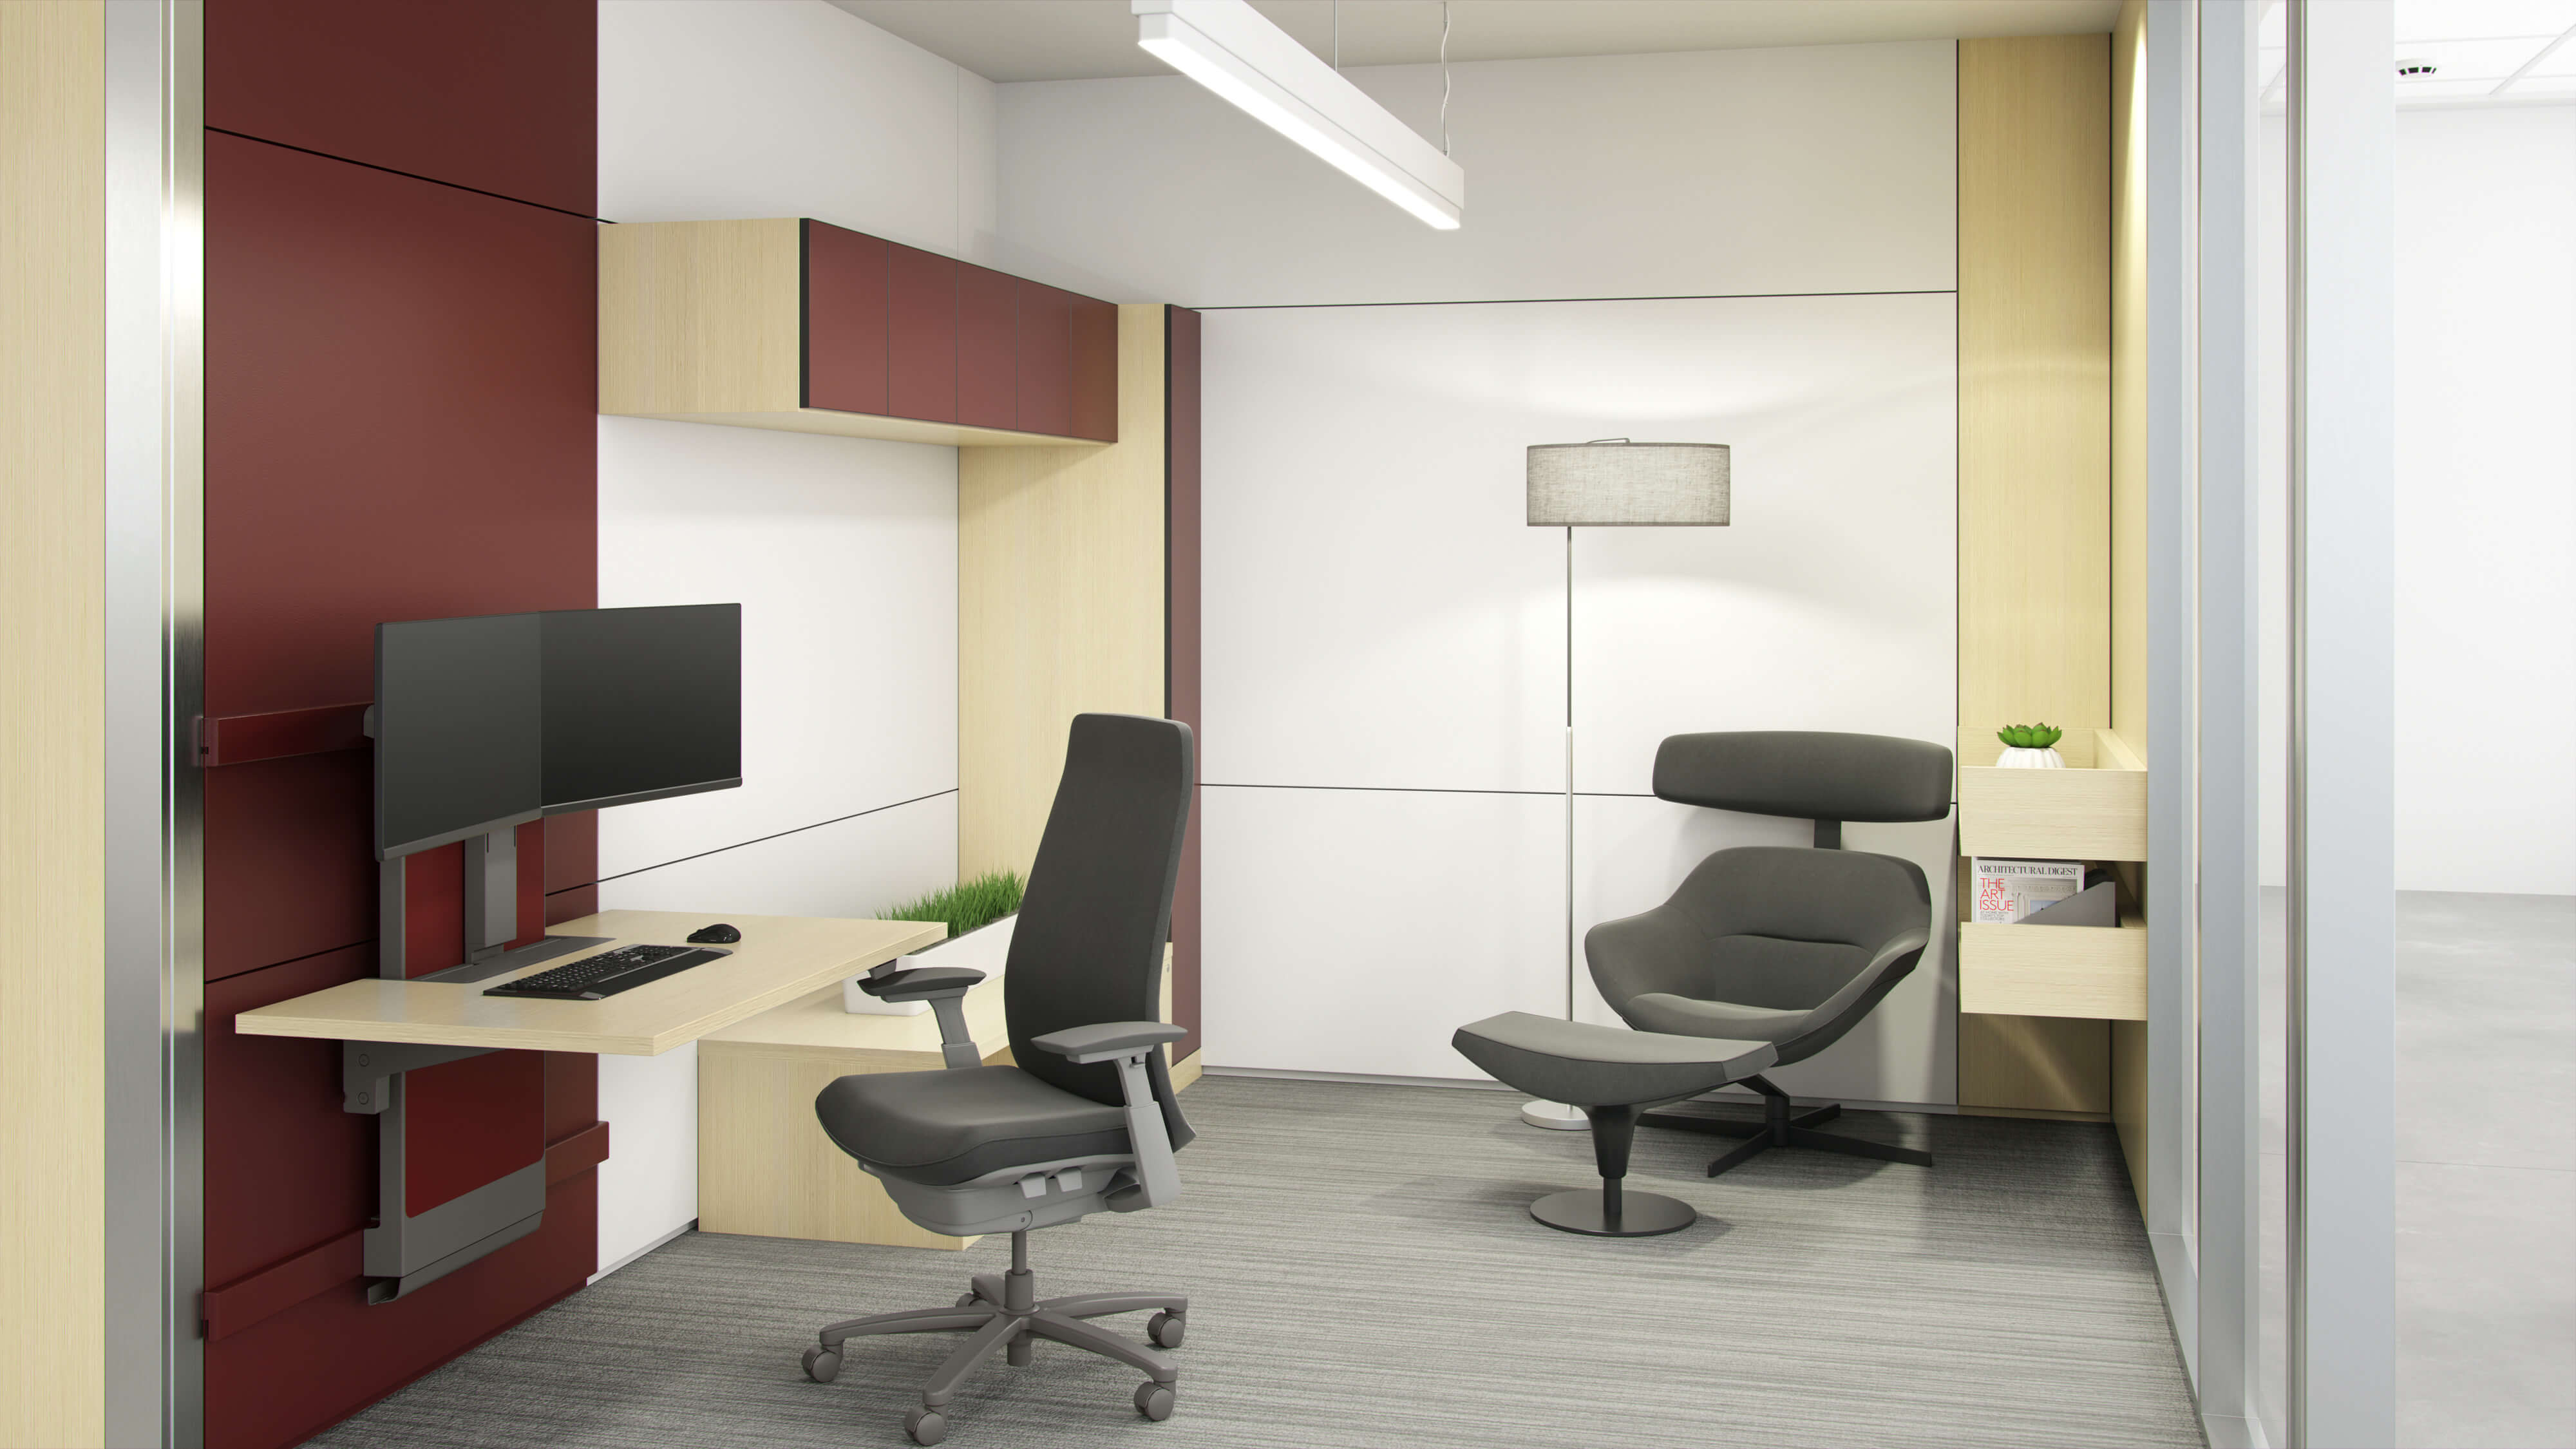 small office with two desk chairs